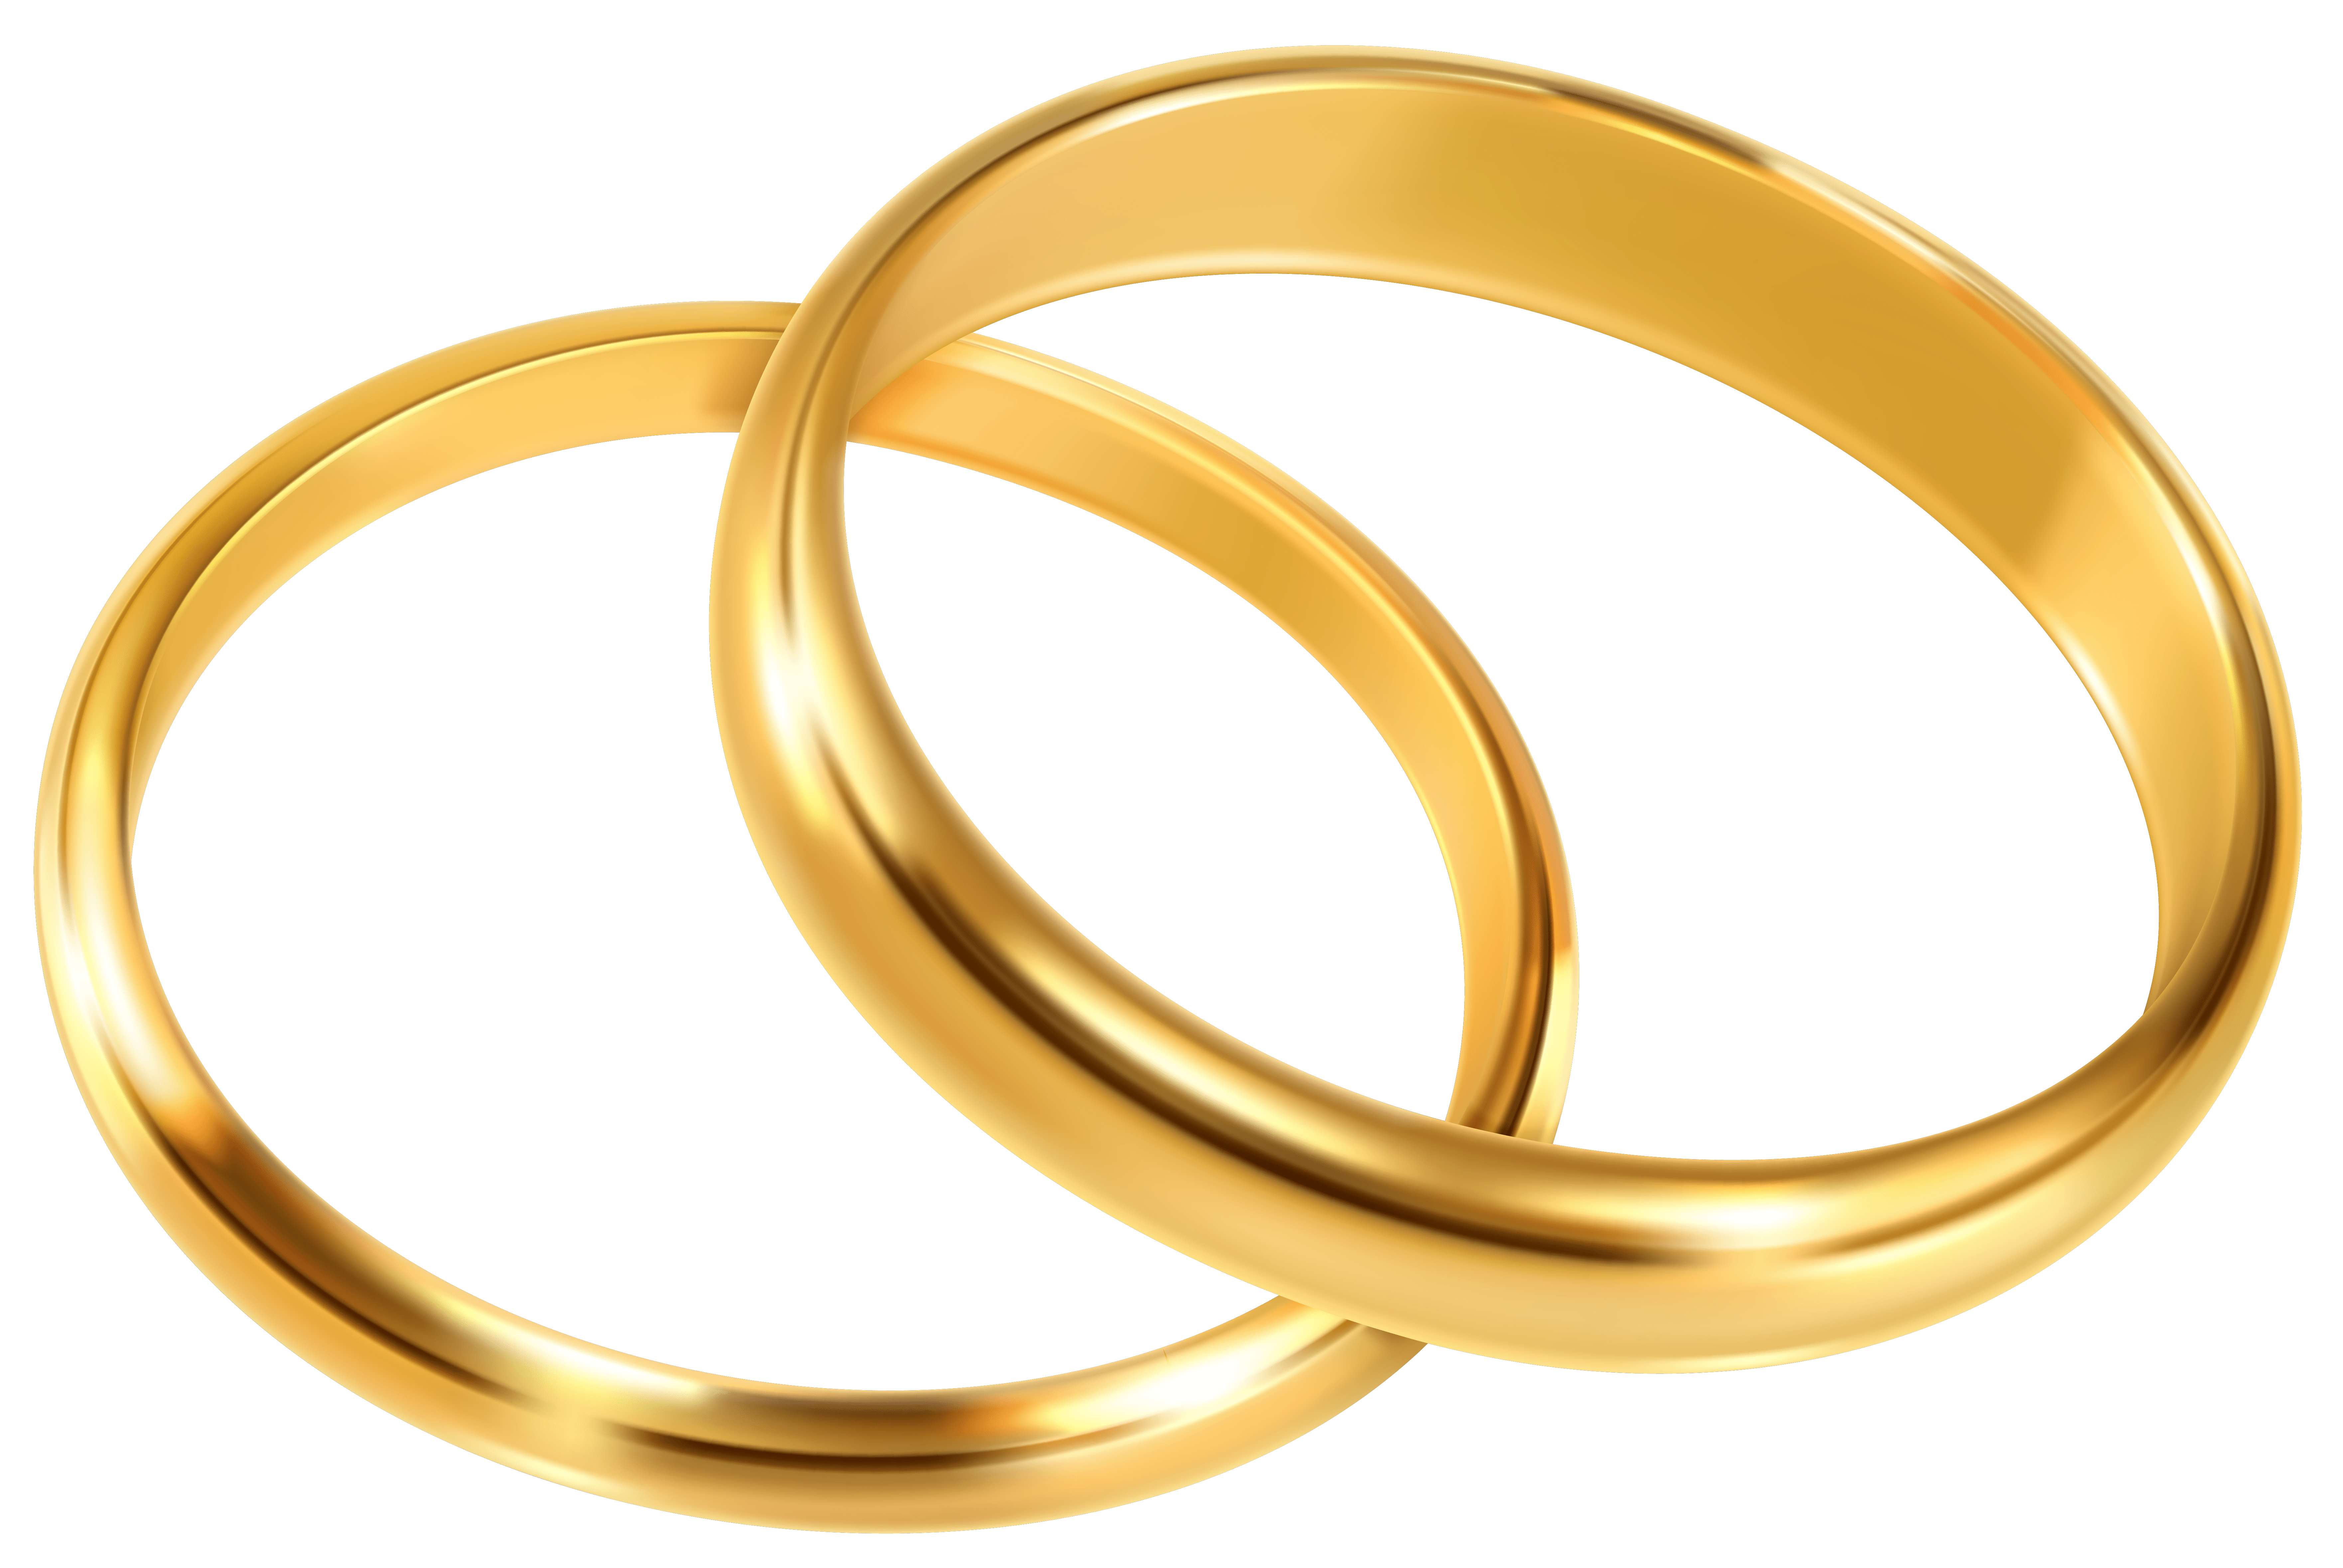 7047x4717 Wedding ring clip art gold wedding ring clipart –